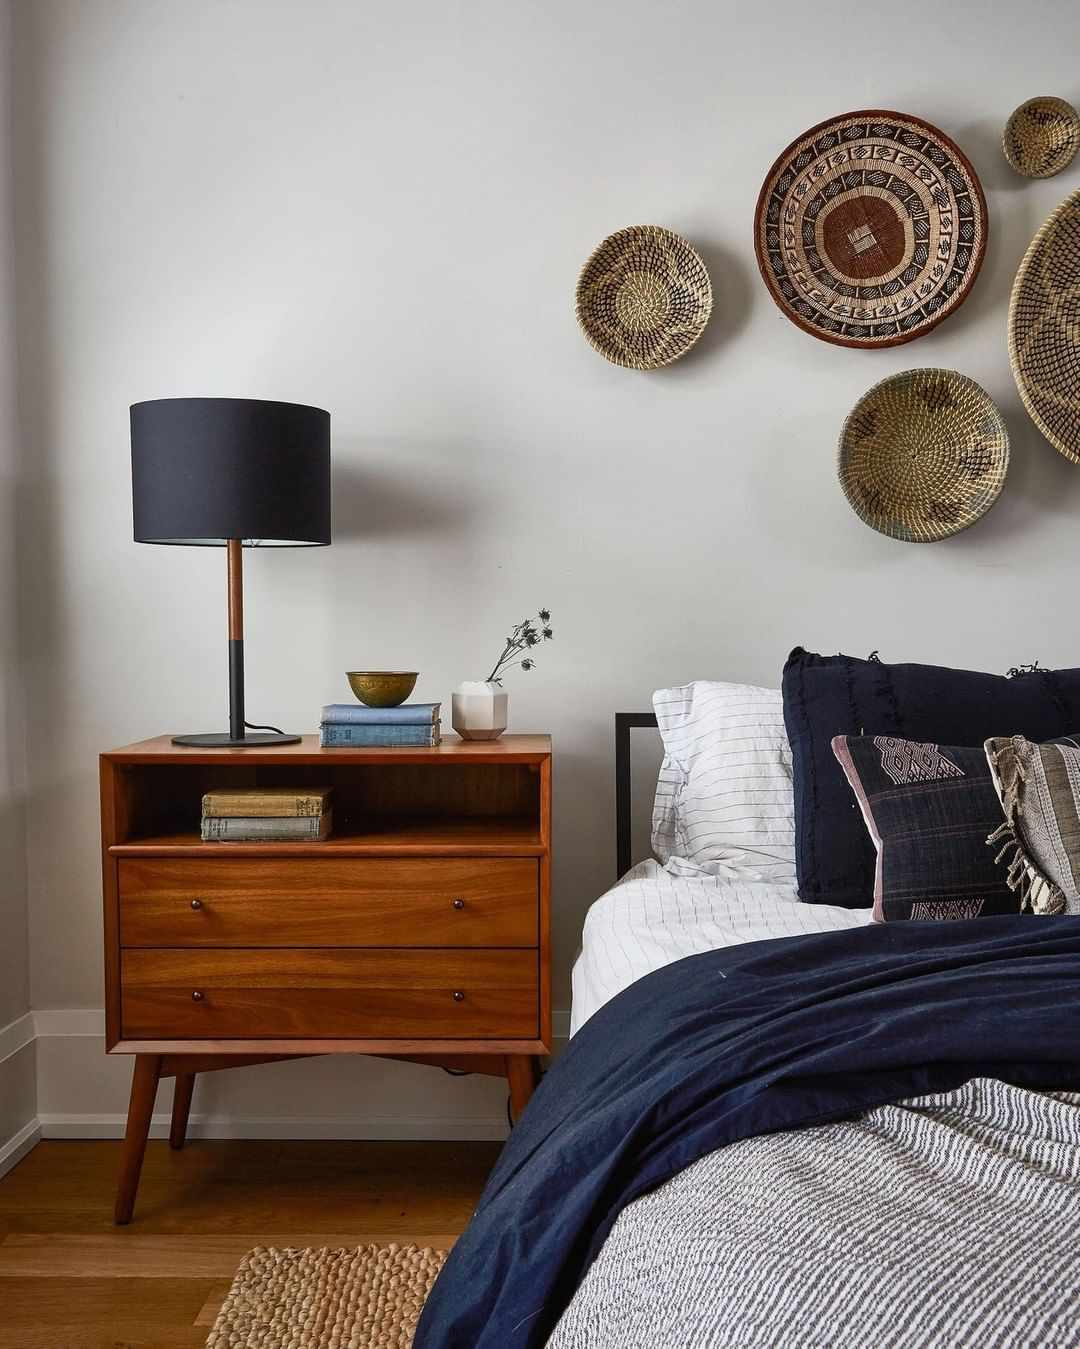 Bed with a wooden nightstand